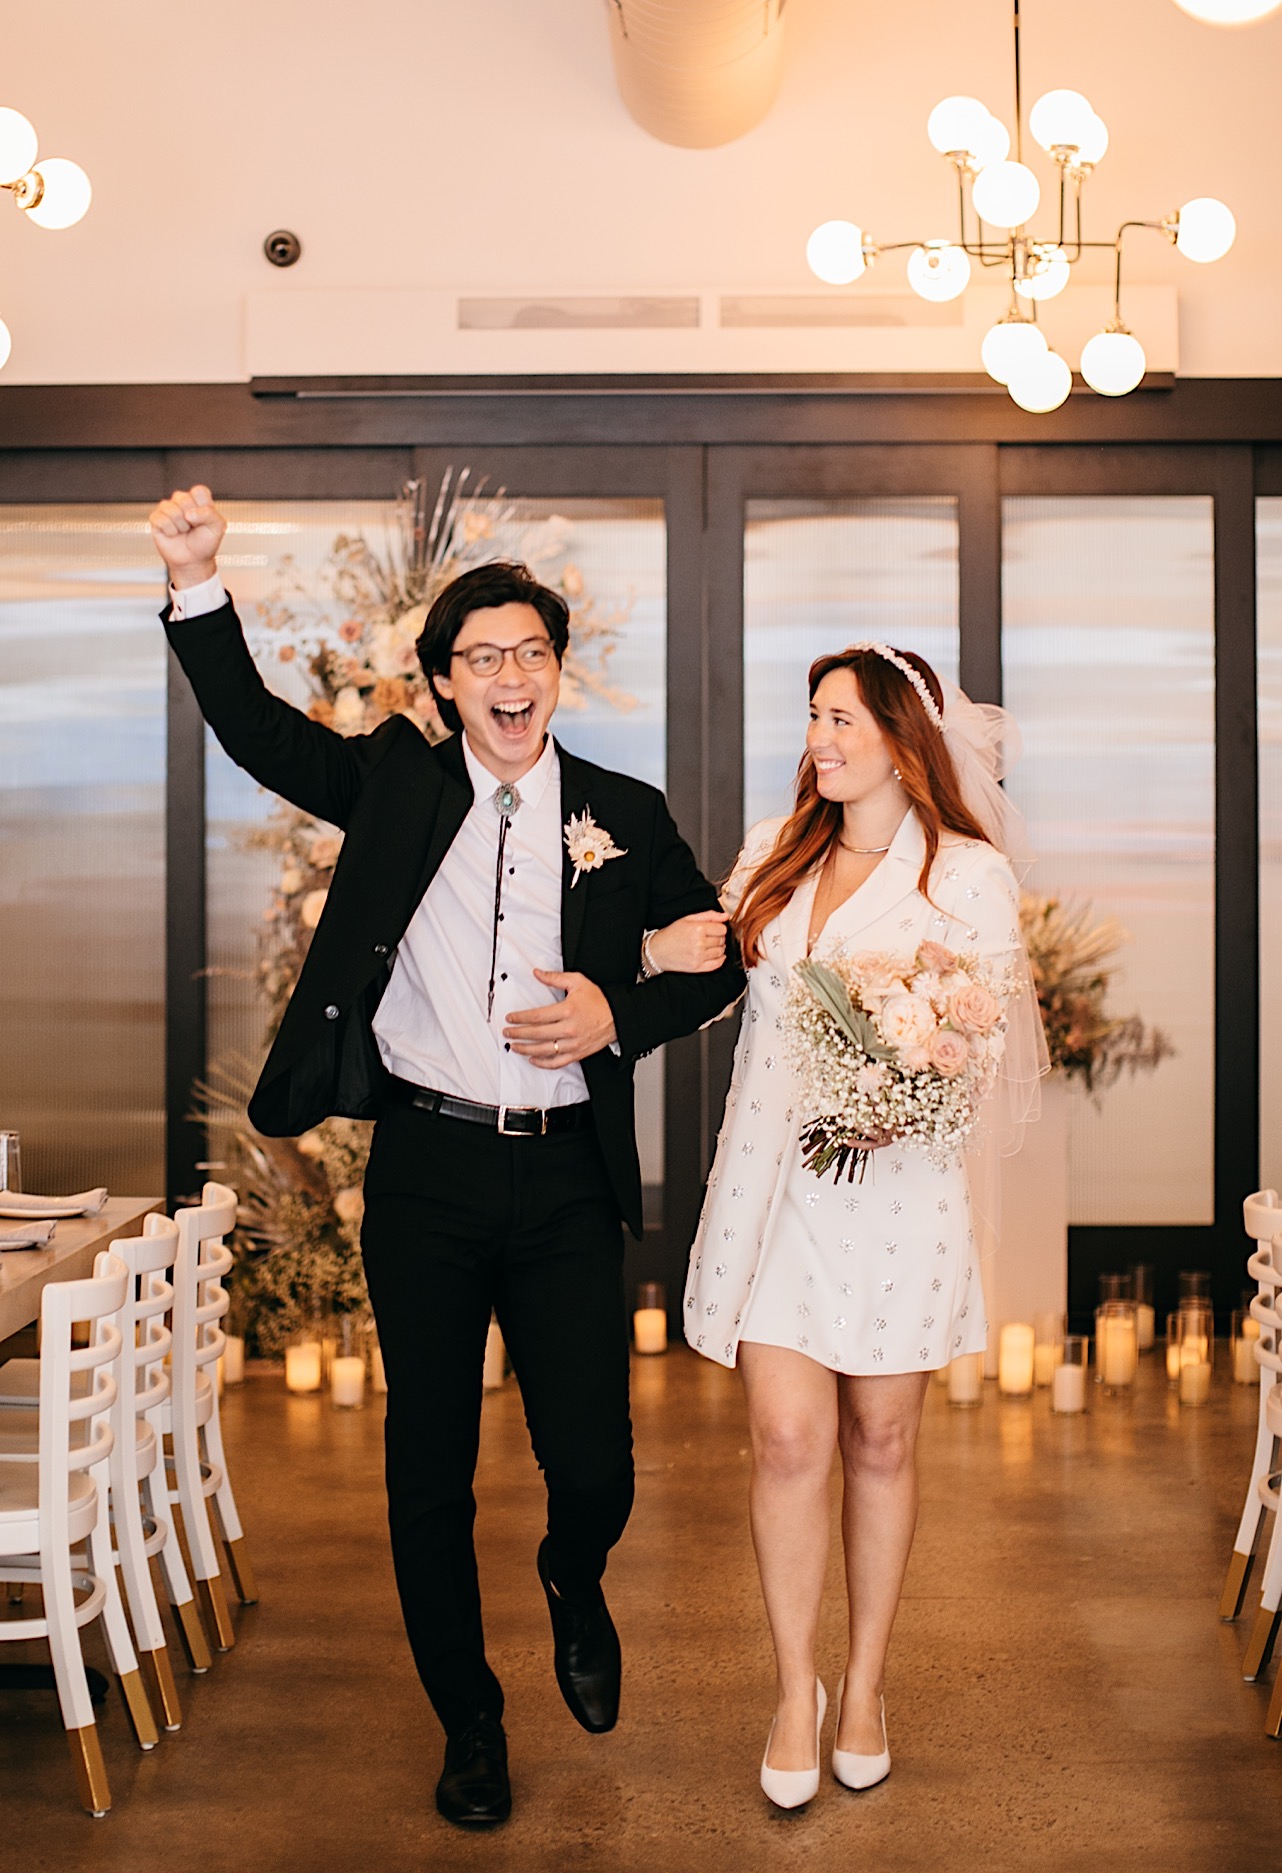 A groom holds his fist in the air as he and the bride walk down the aisle following their wedding ceremony.